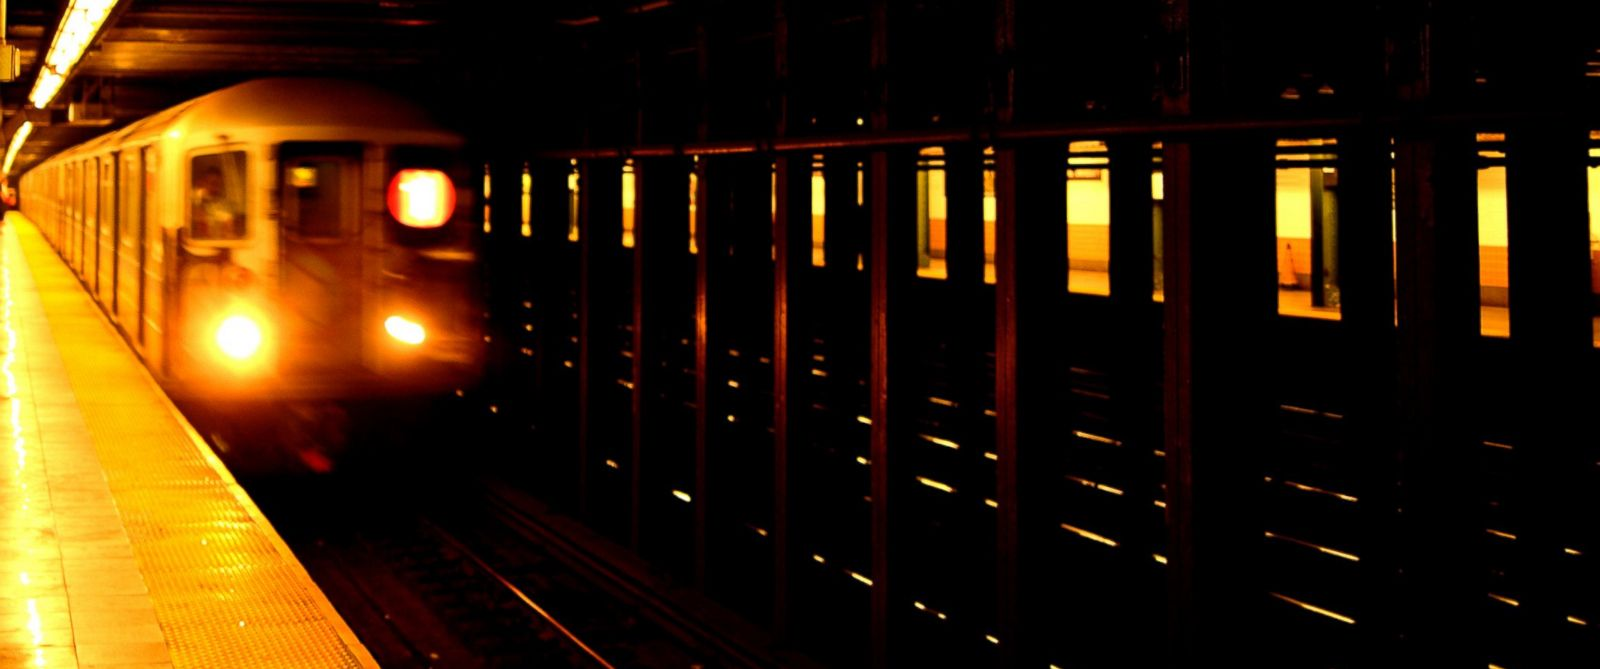 PHOTO: A New York City subway train pulls into the station in this stock photo.